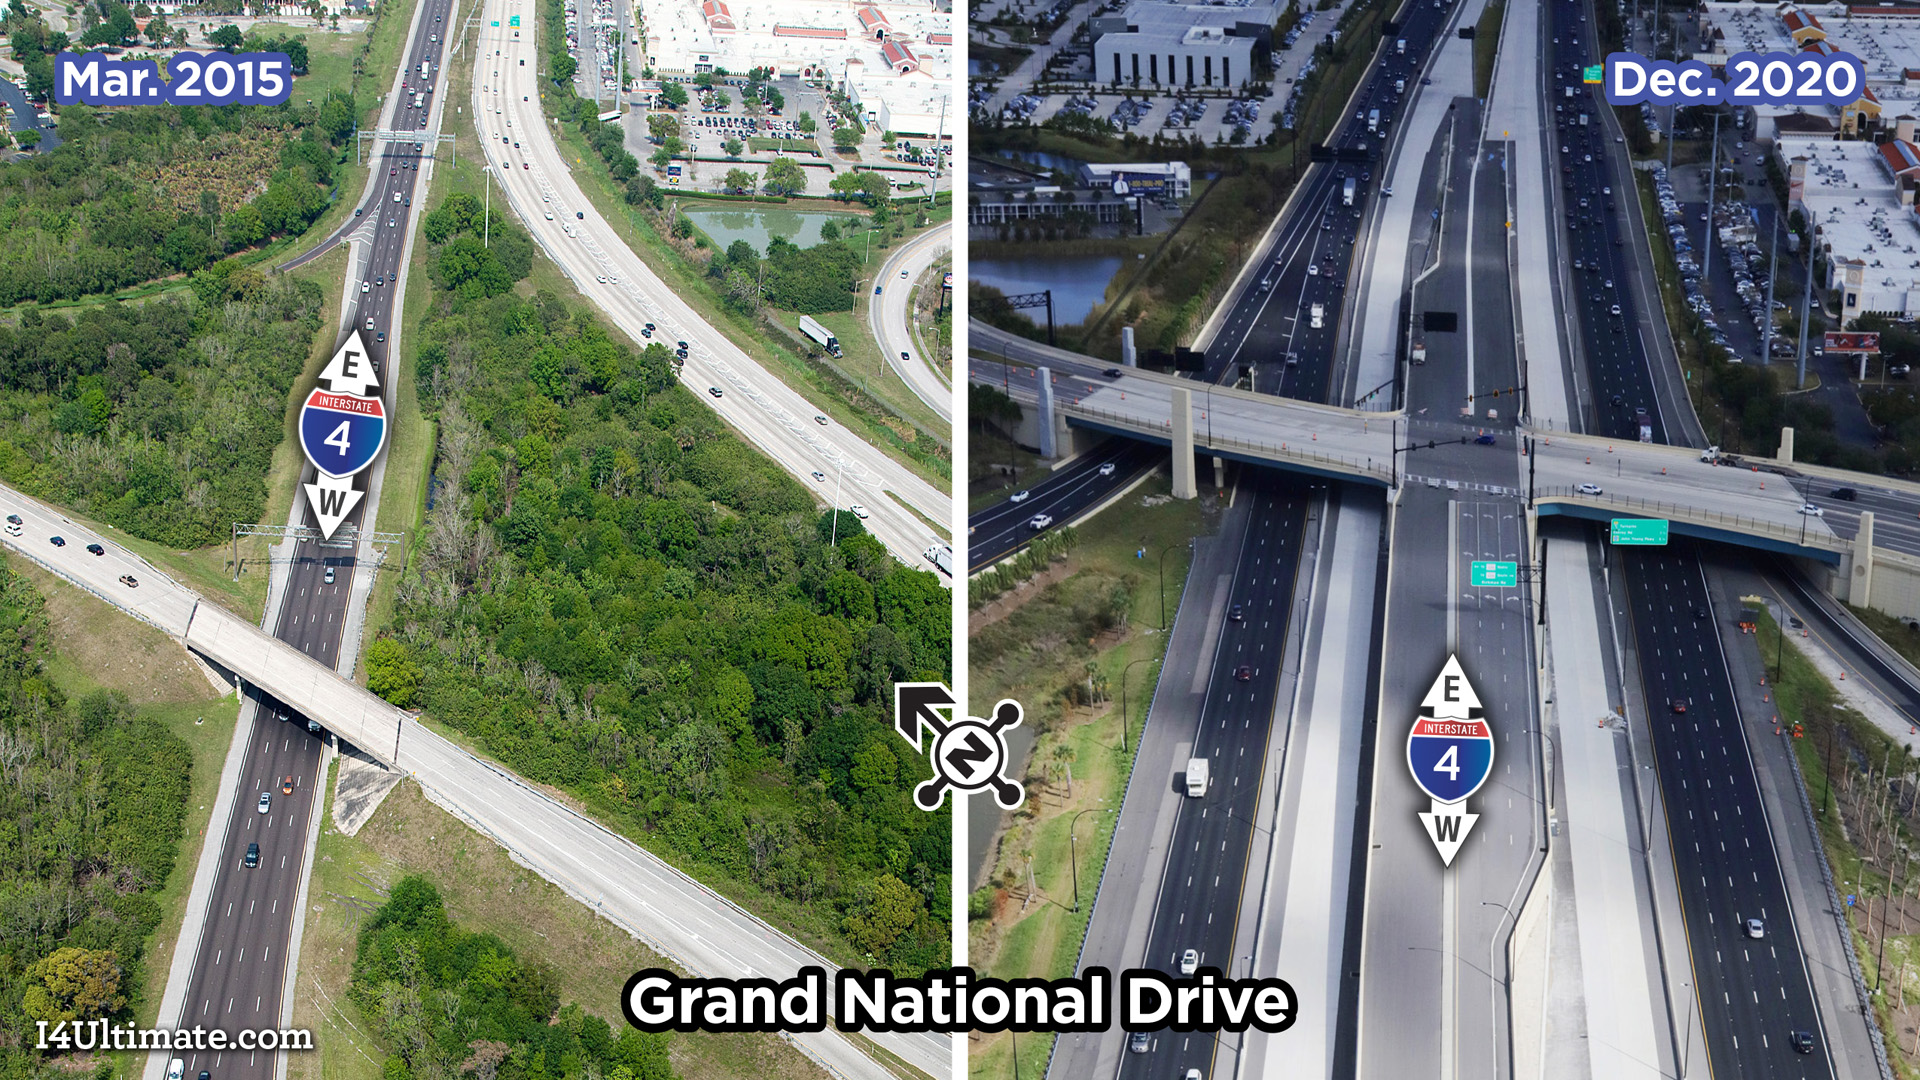 4738-I4Ultimate-GUL-campaign-images-20210212-03-Grand-National-Drive